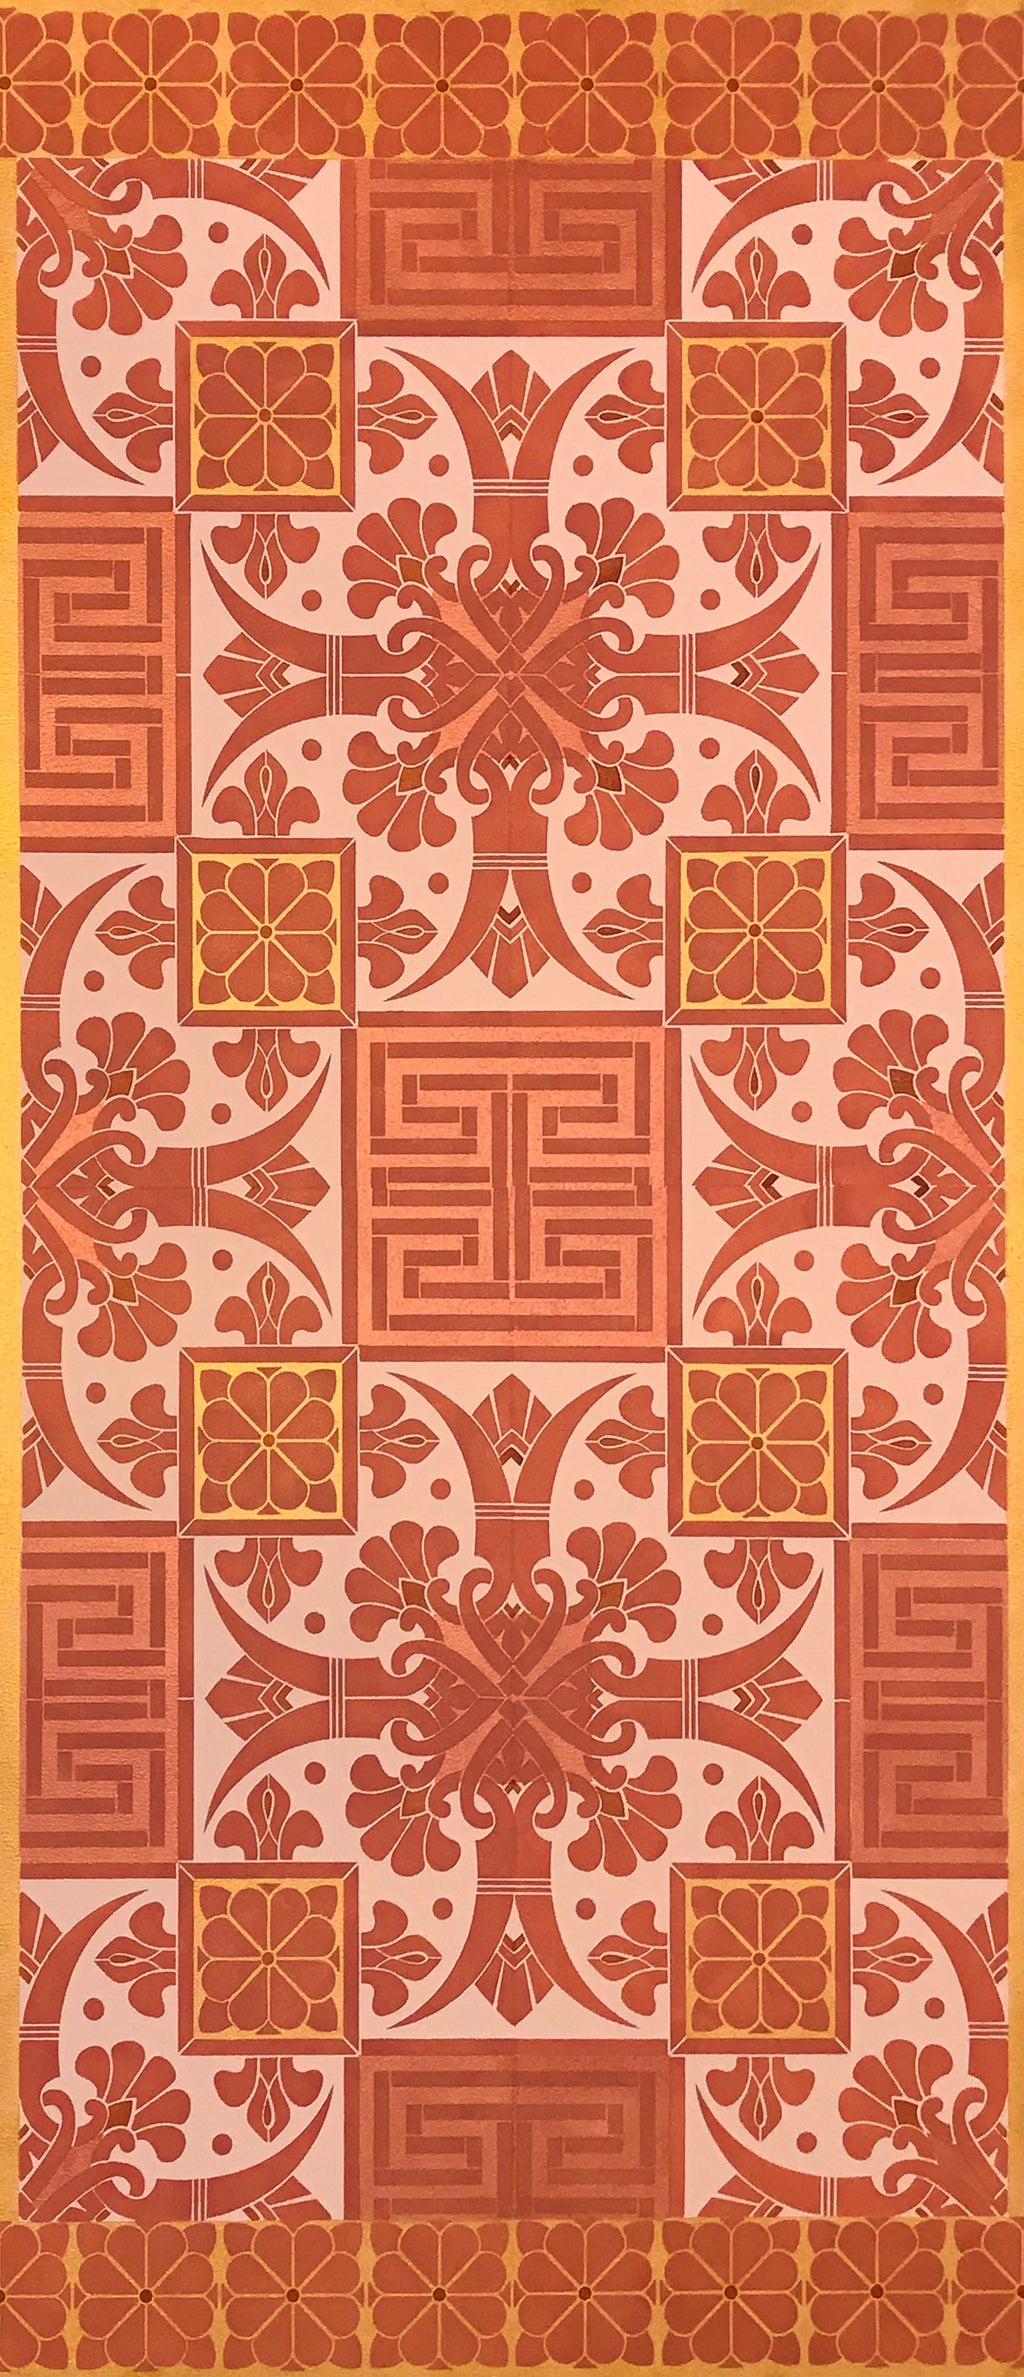 Full image of this floorcloth based on a Christopher Dresser pattern in pink, copper and gold tones.